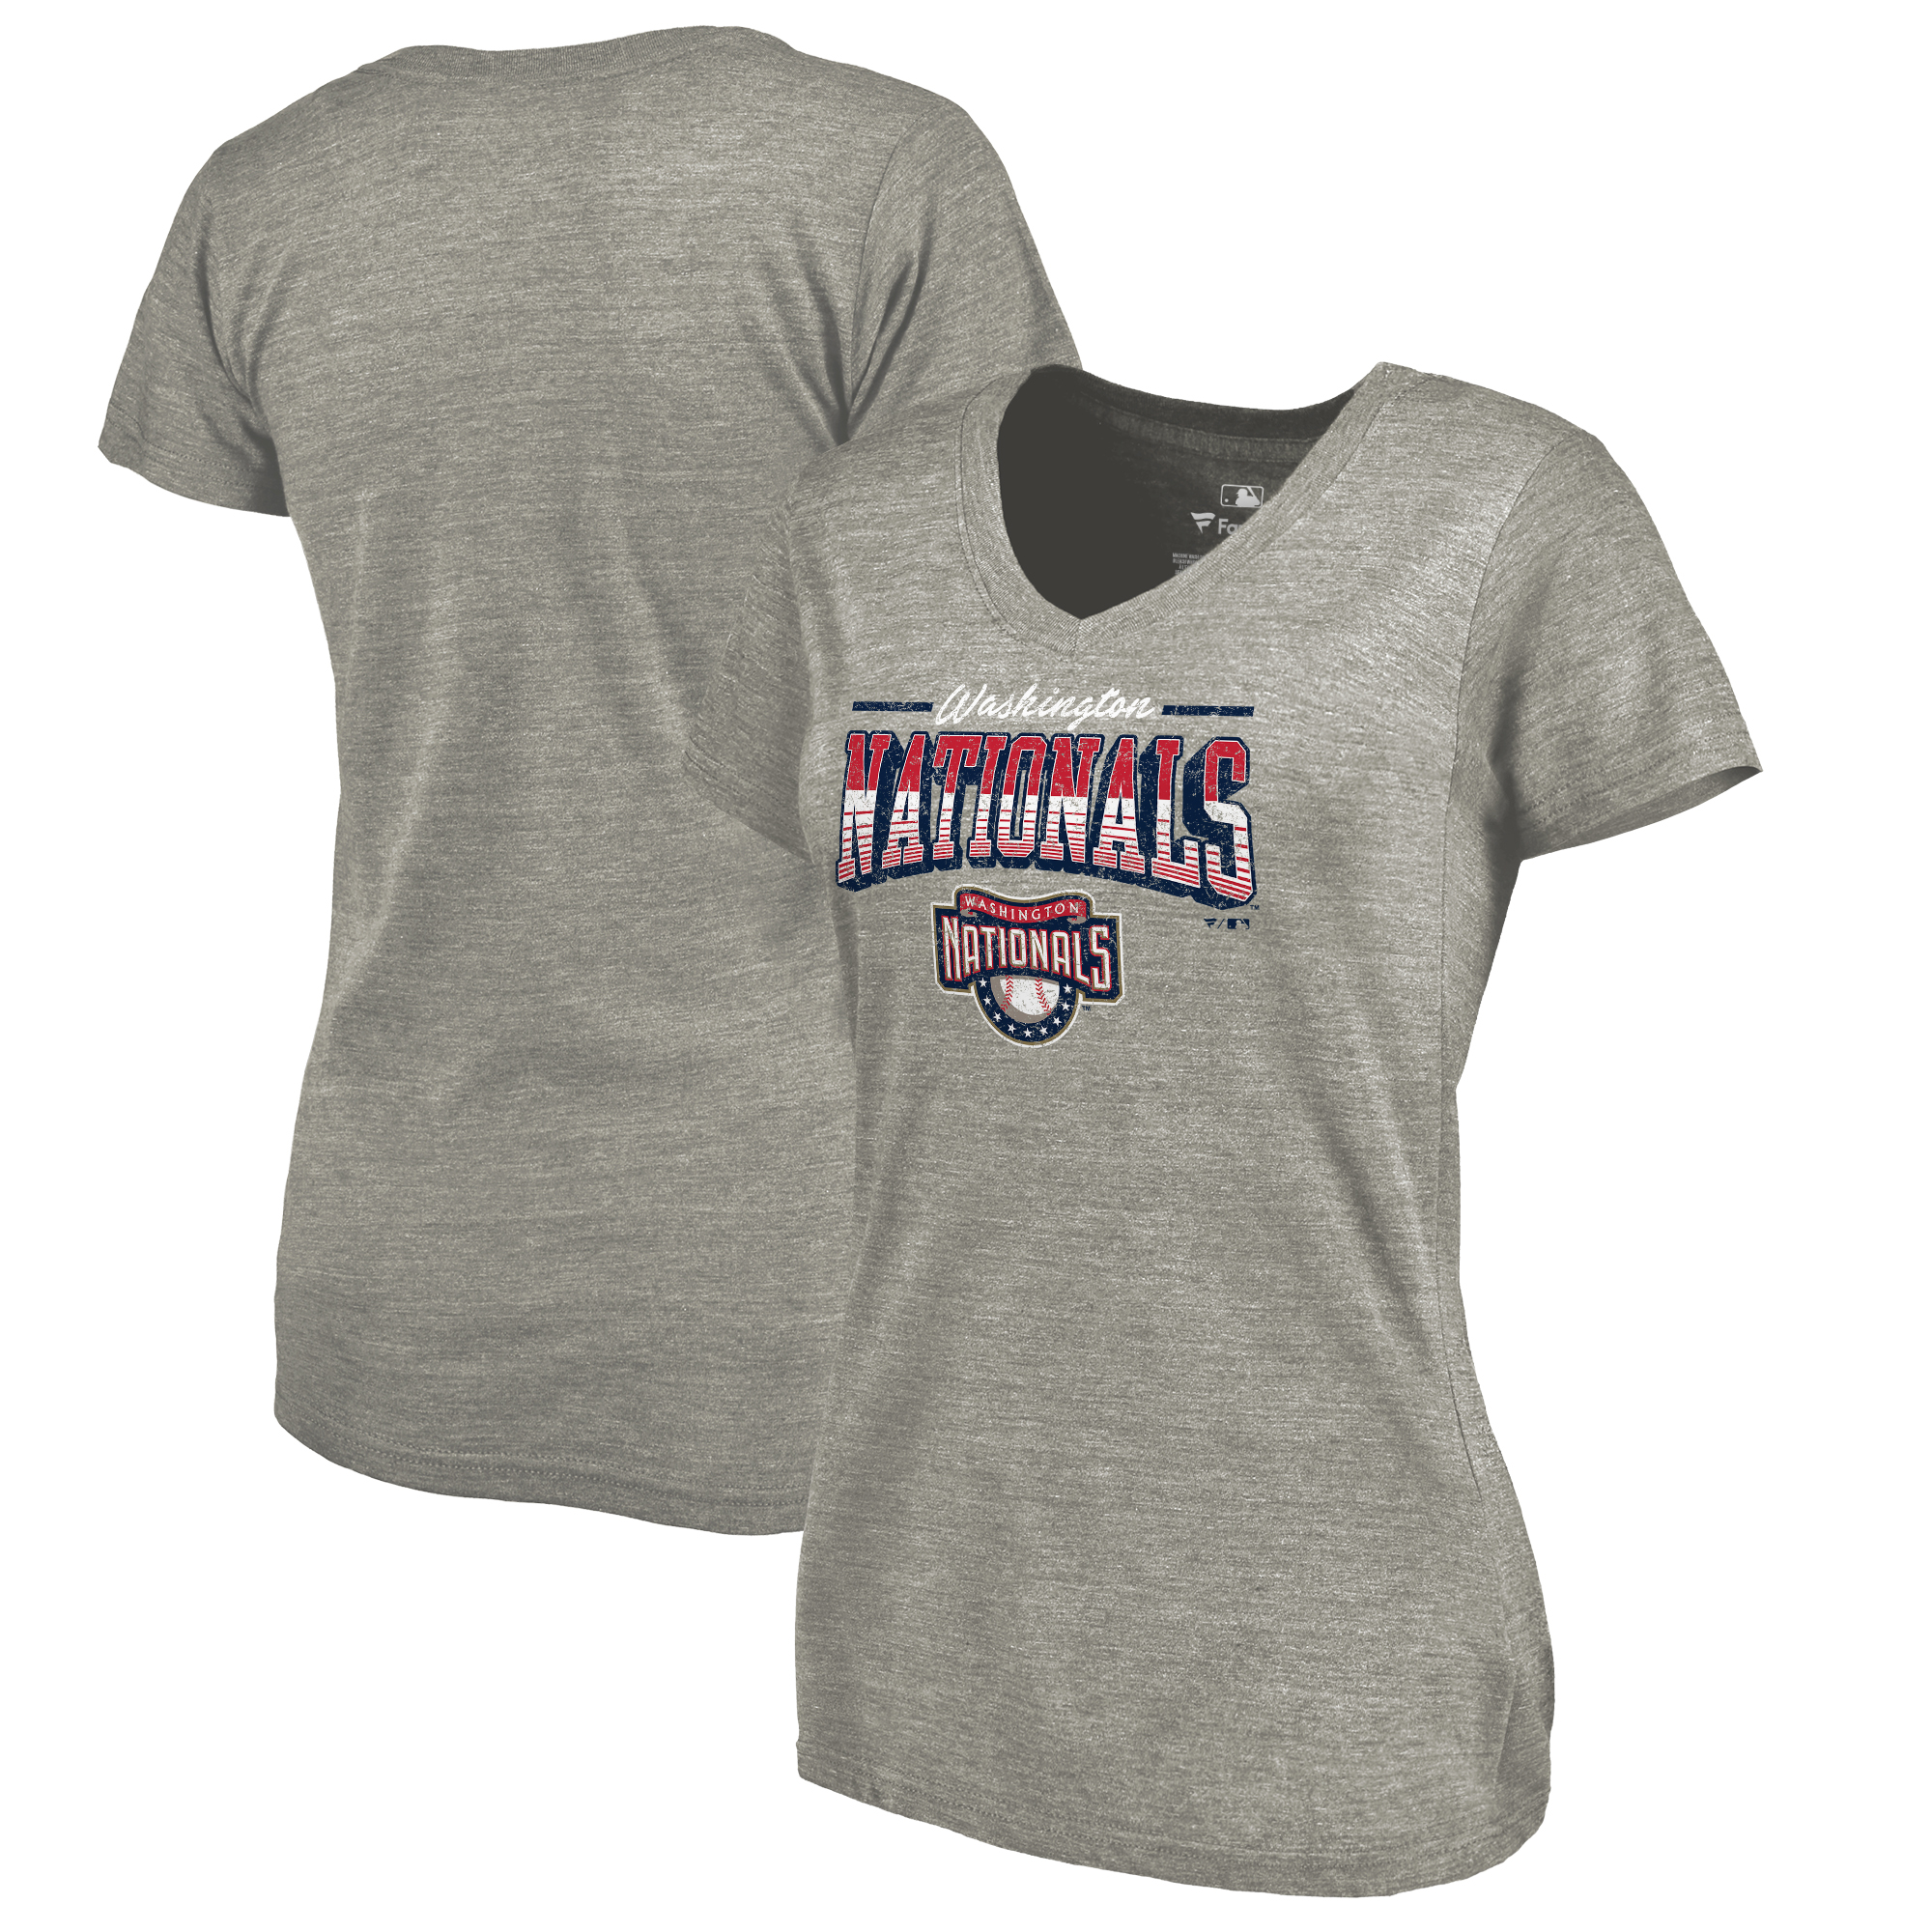 Washington Nationals Fanatics Branded Women's Cooperstown Collection Season Ticket Tri-Blend V-Neck T-Shirt - Heathered Gray